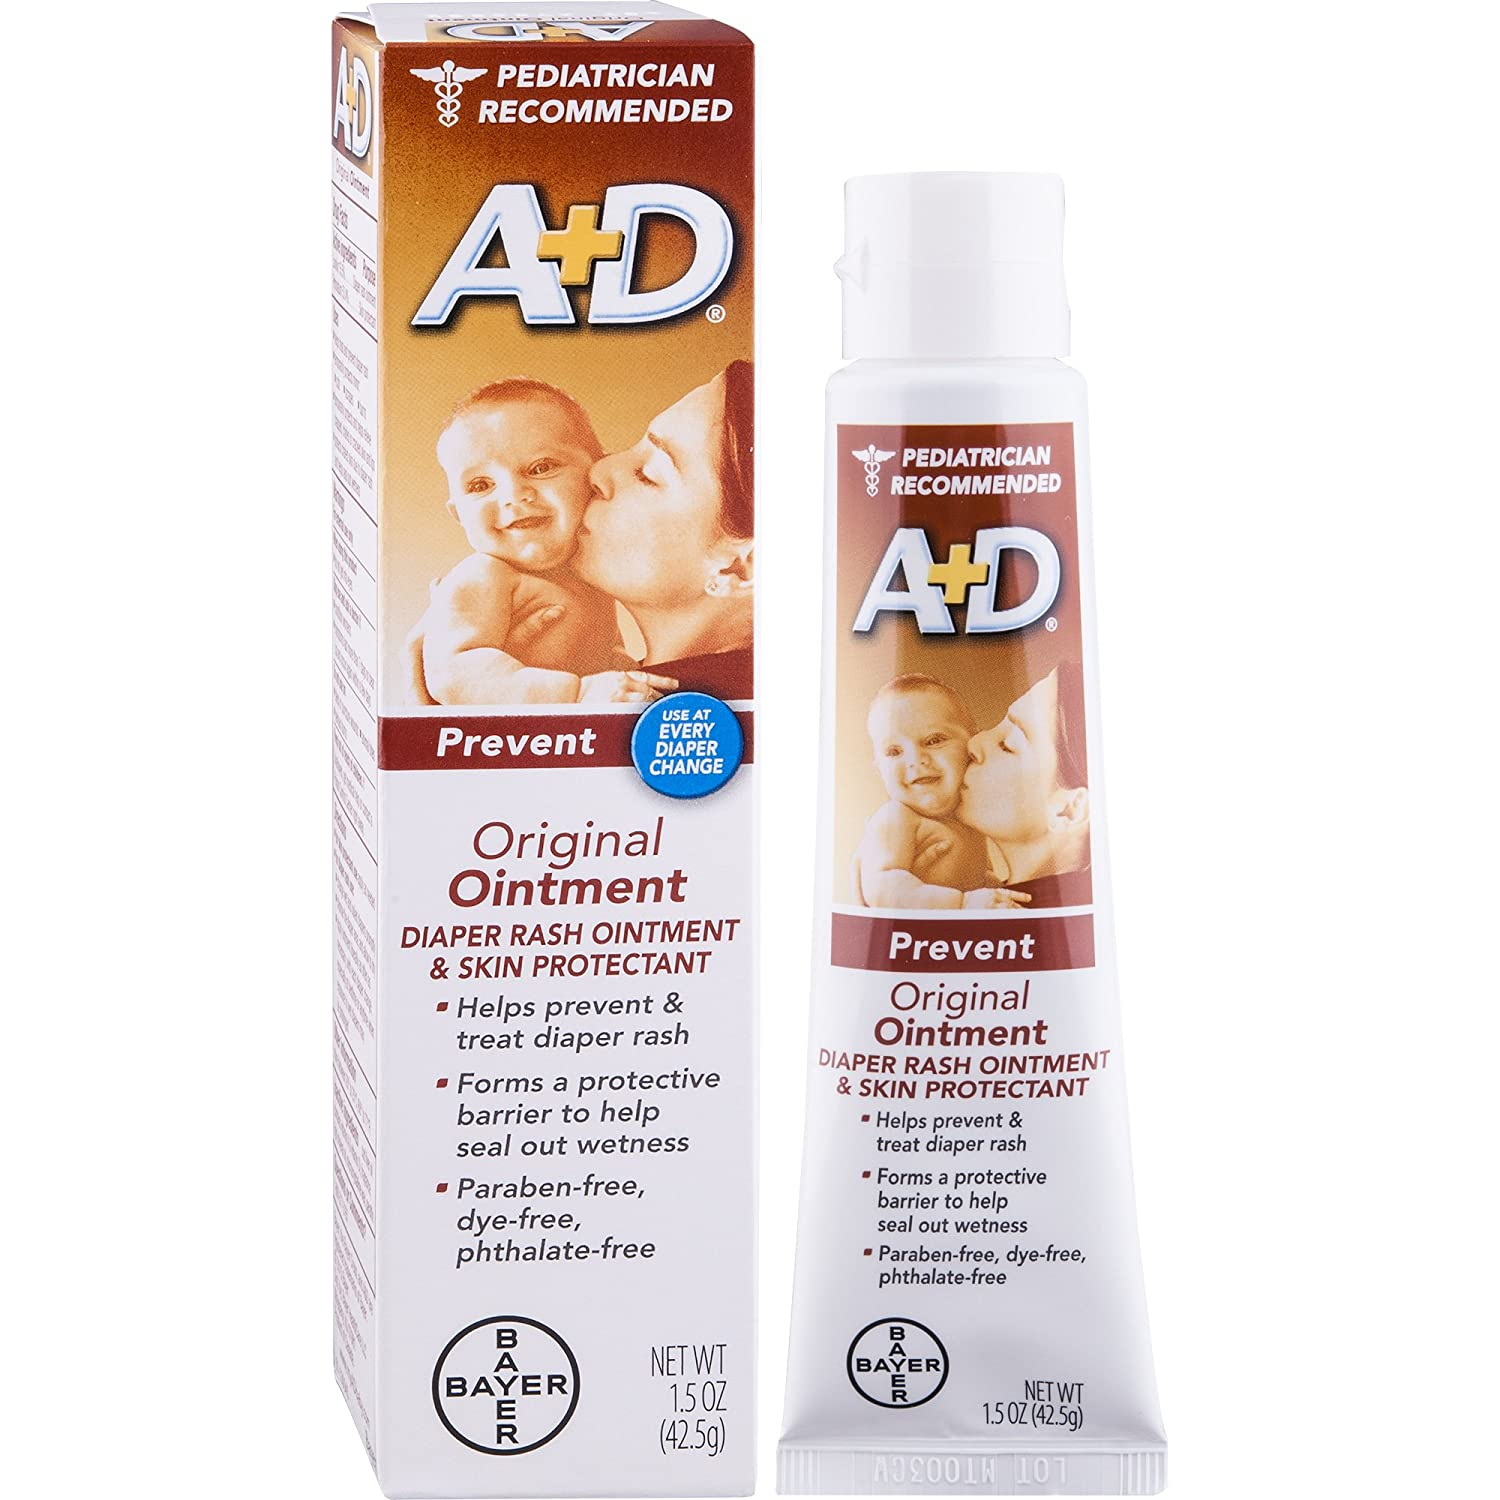 A+D Original Diaper Rash Ointment, Baby Skin Protectant With Lanolin and Petrolatum, Seals Out Wetness, Helps Prevent Diaper Rash, 1.5 Ounce Tube A&D 454494